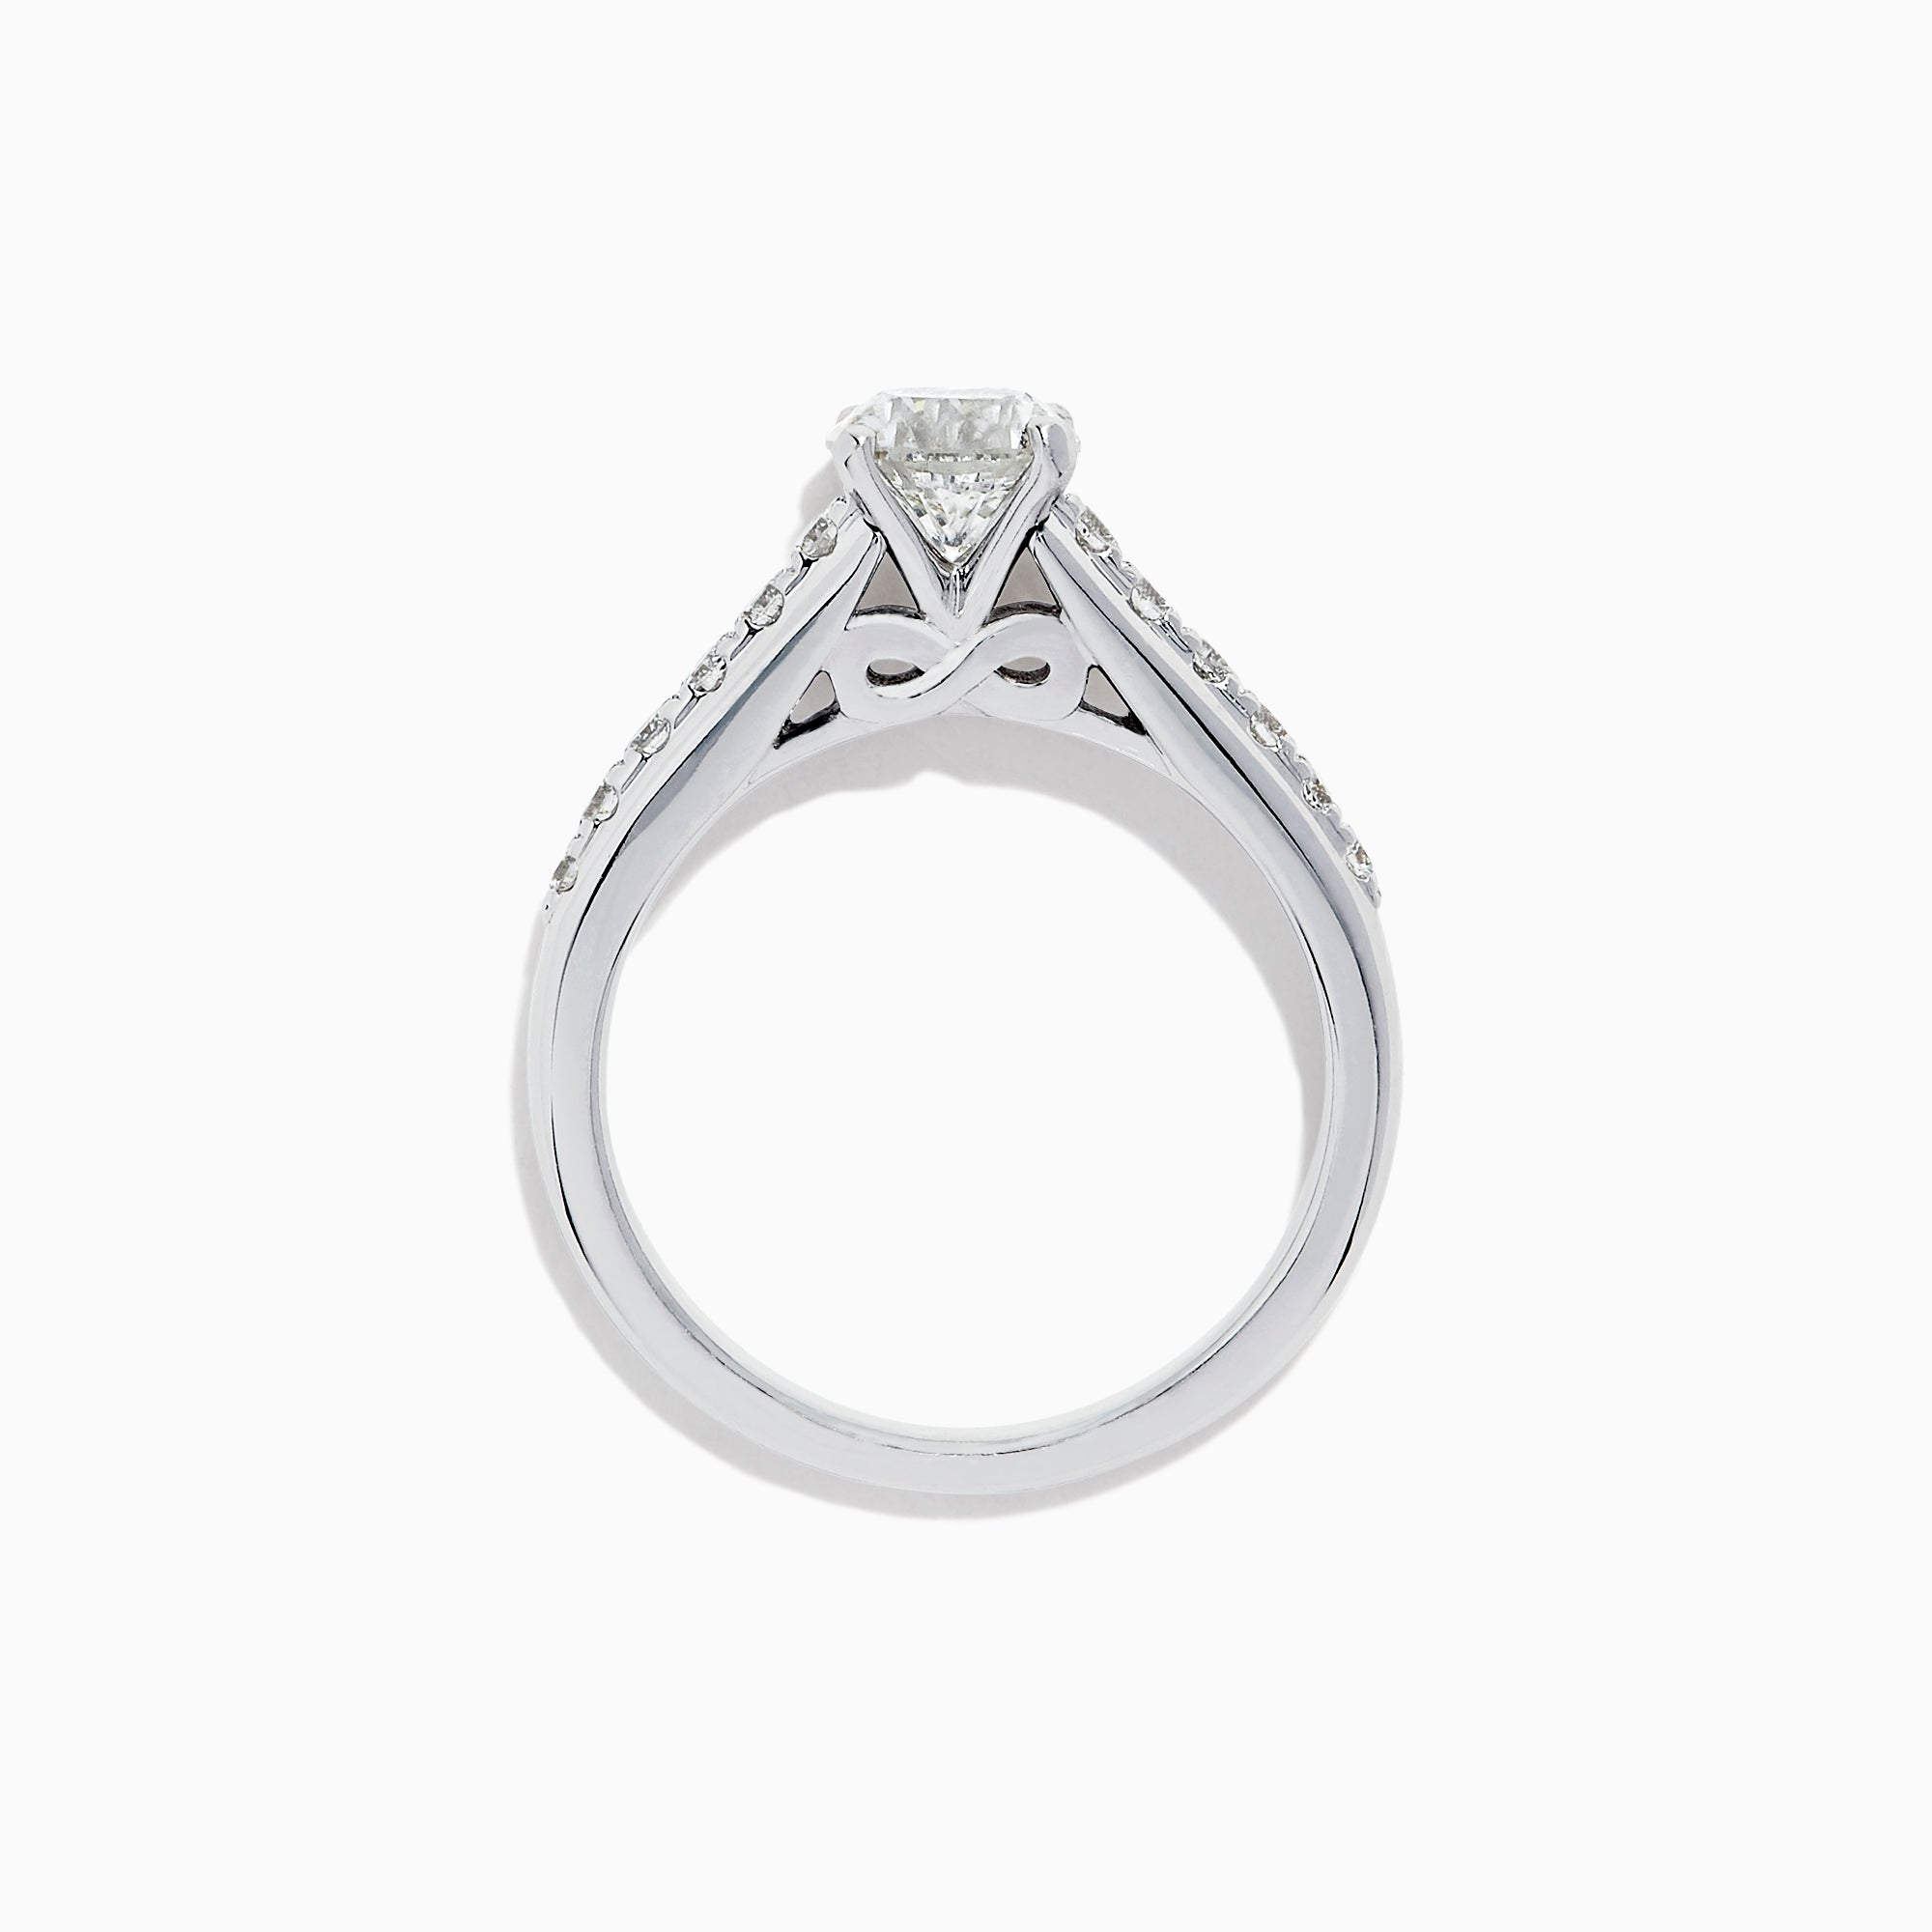 Effy Brida 18K White Gold Diamond Solitaire Ring, 1.24 TCW